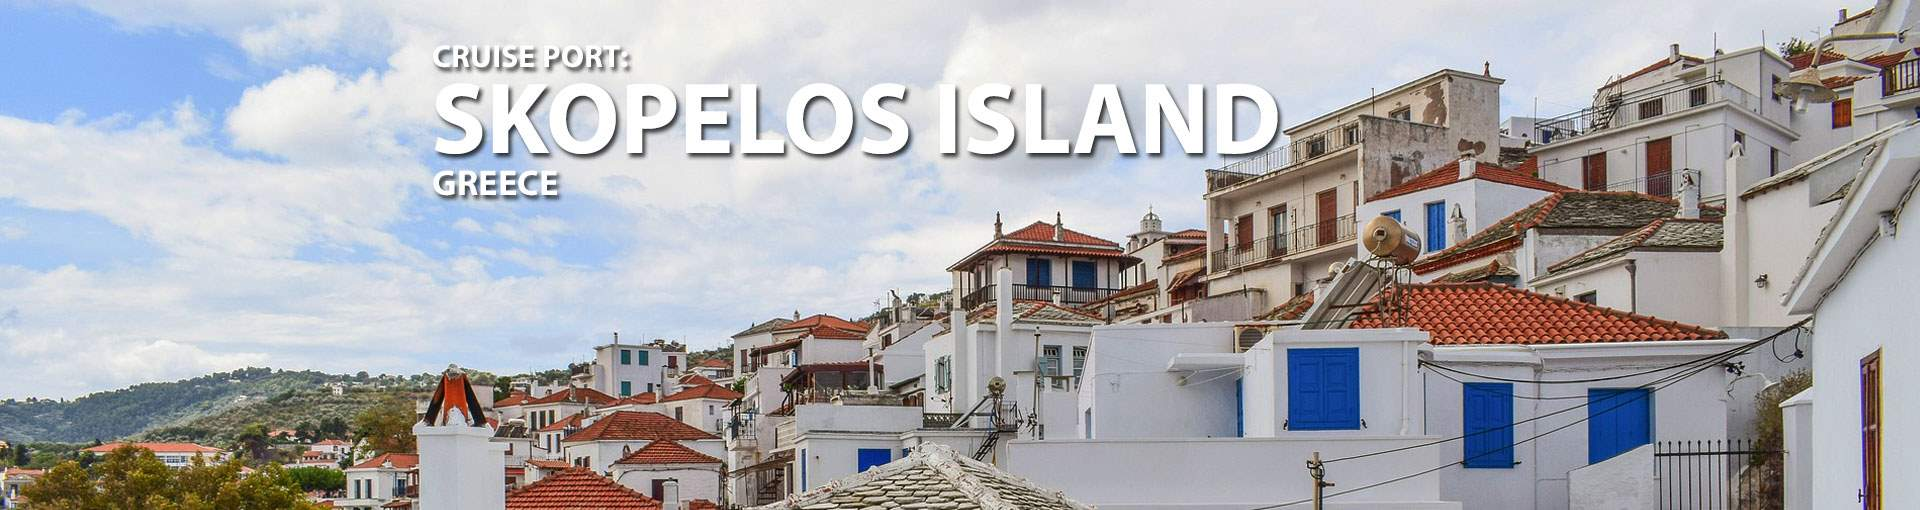 Skopelos, Greece Cruise Port